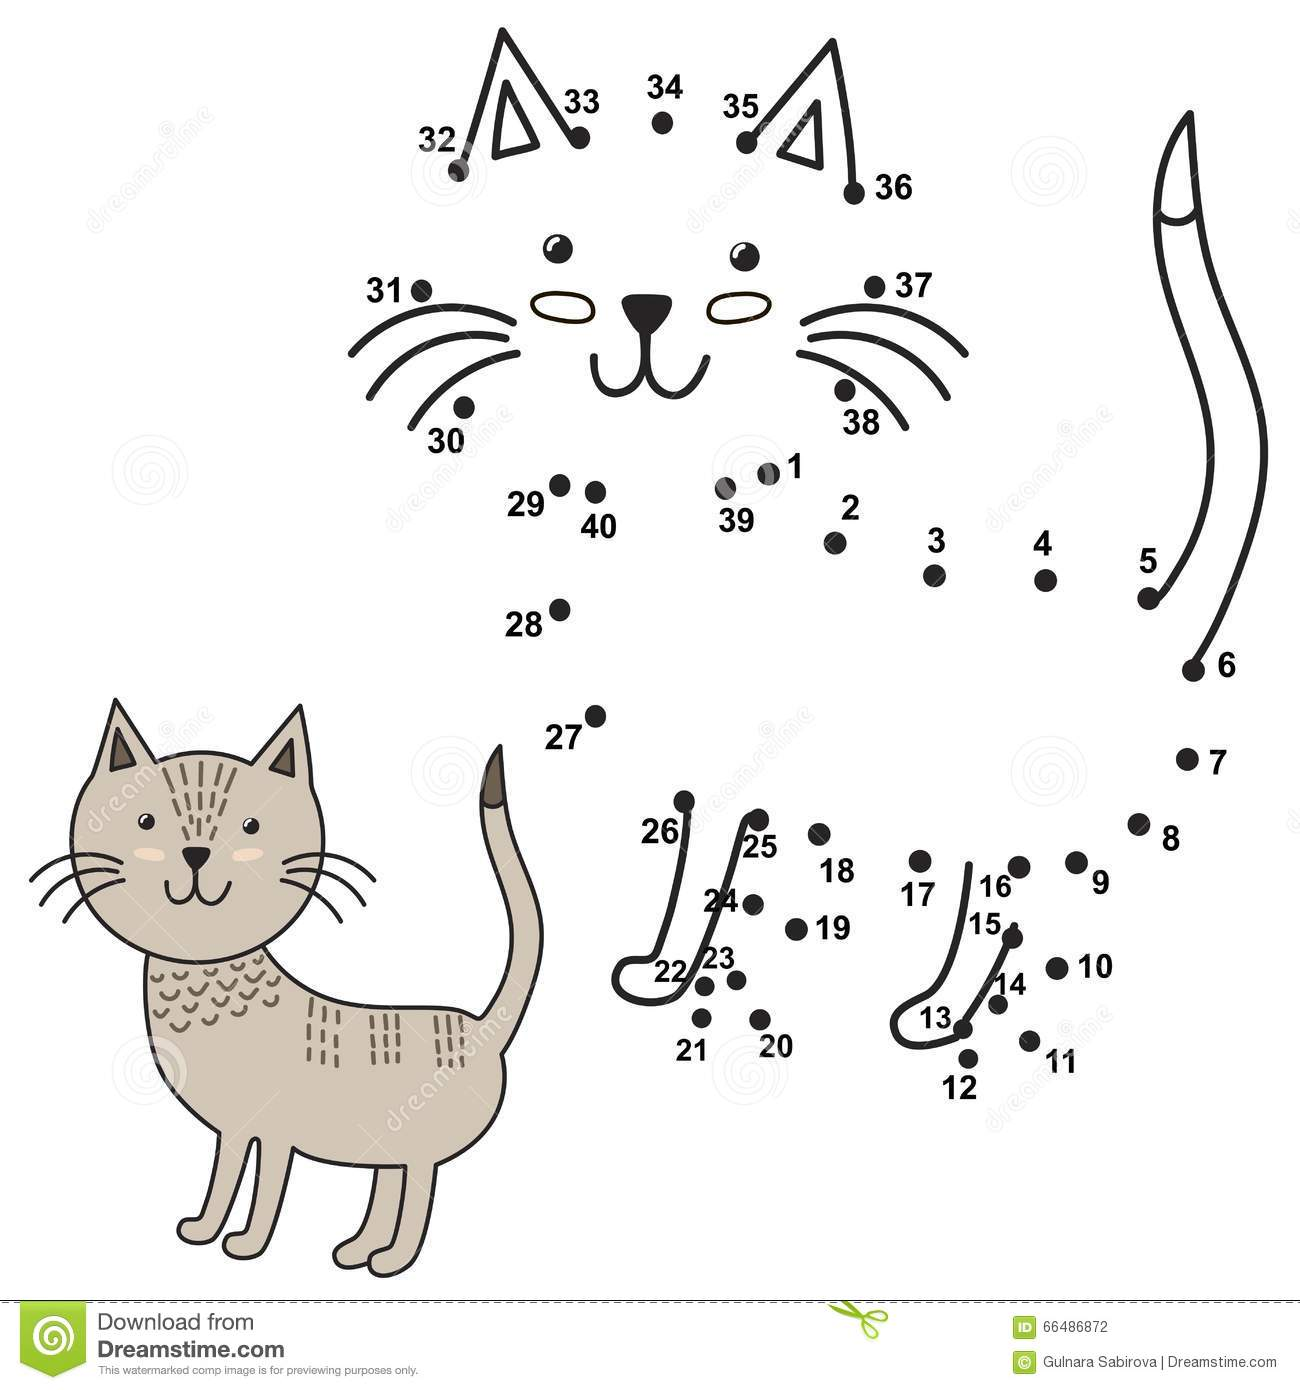 connect-dots-to-draw-cute-cat-color-educational-numbers-coloring-game-children-vector-illustration-66486872